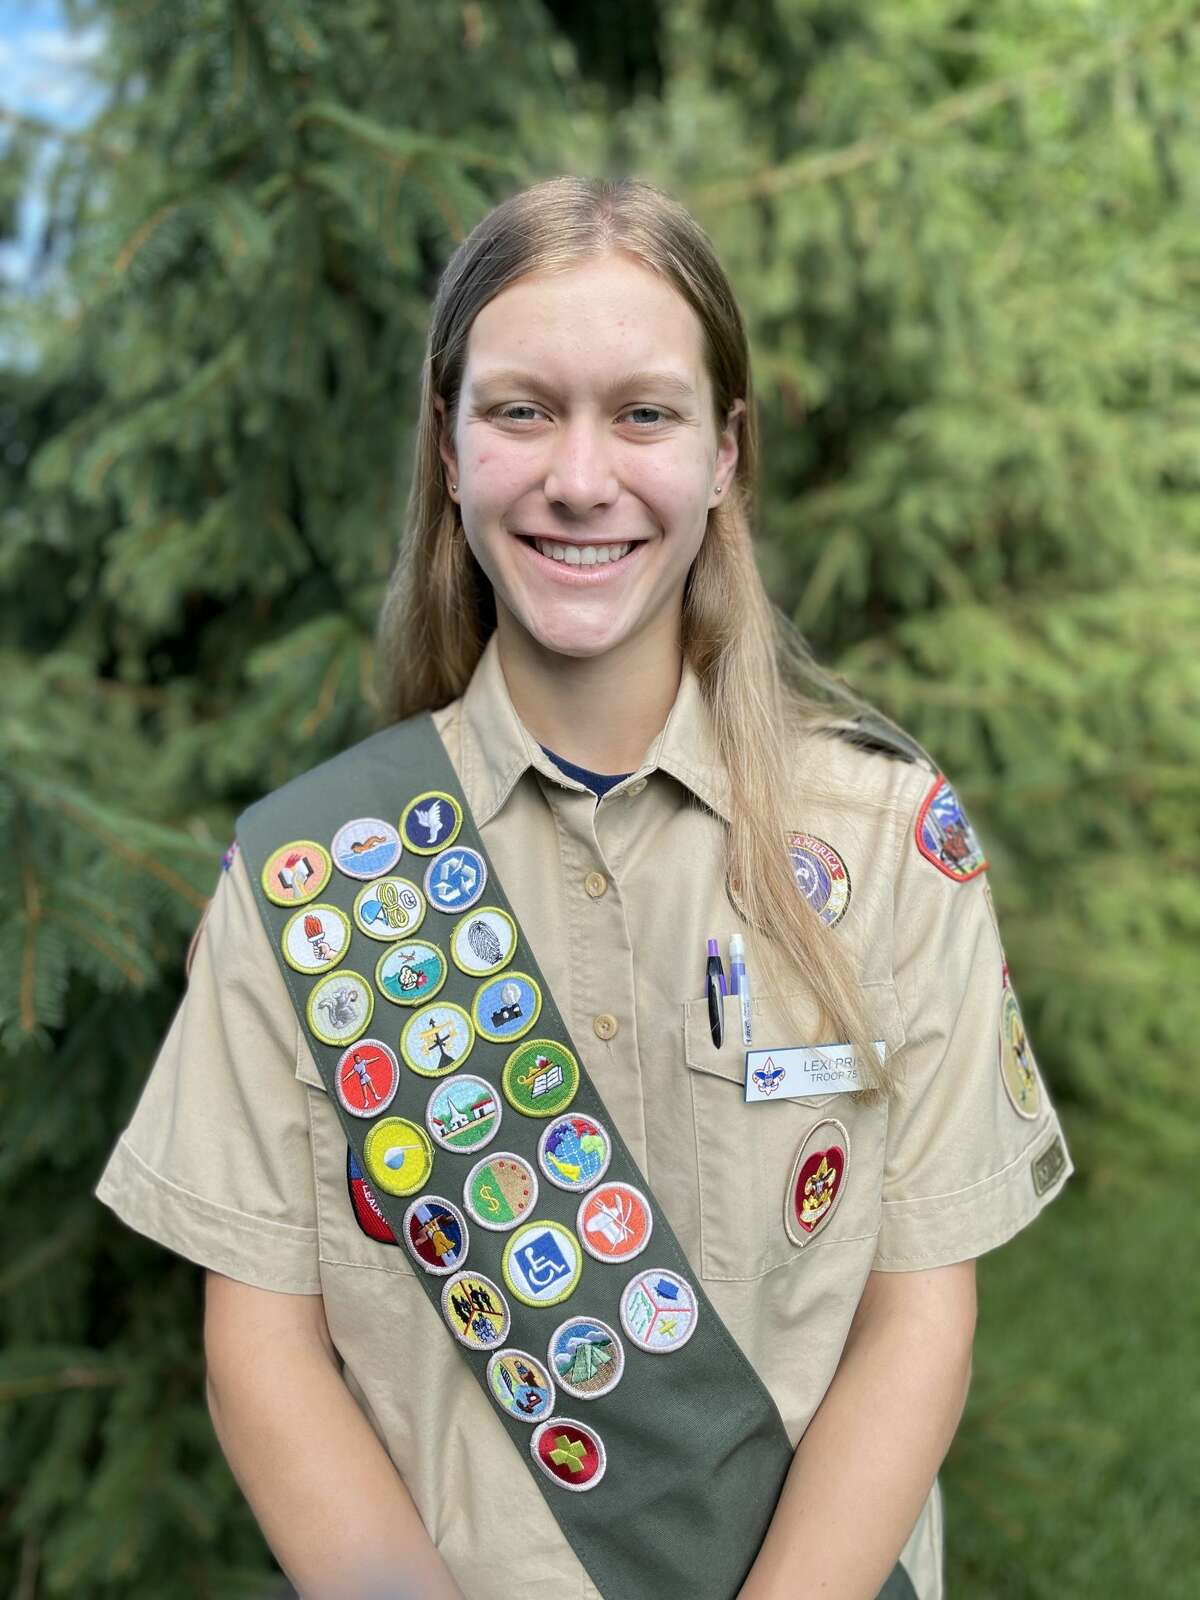 Guilderland High School rising junior Lexi Pris is Albany County's first female Eagle Scout. She joined Troop 75G in Delmar after Scouts BSA opened its ranks to females in February2019.